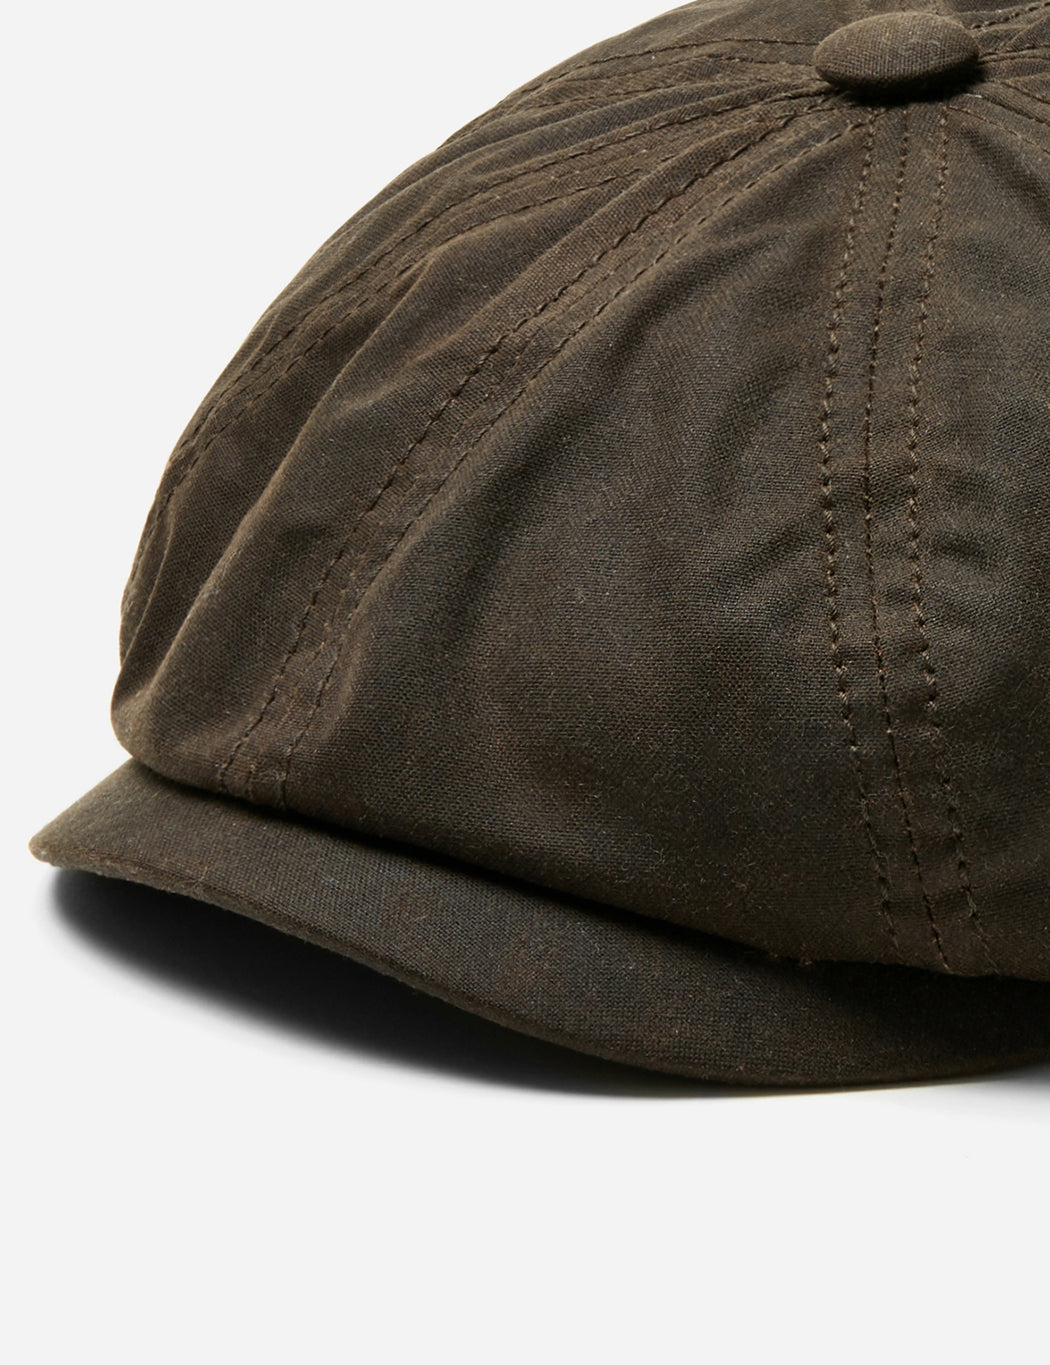 7ed151f5701 Stetson Hatteras Newsboy Cap (Waxed Cotton) - Dark Brown – URBAN EXCESS